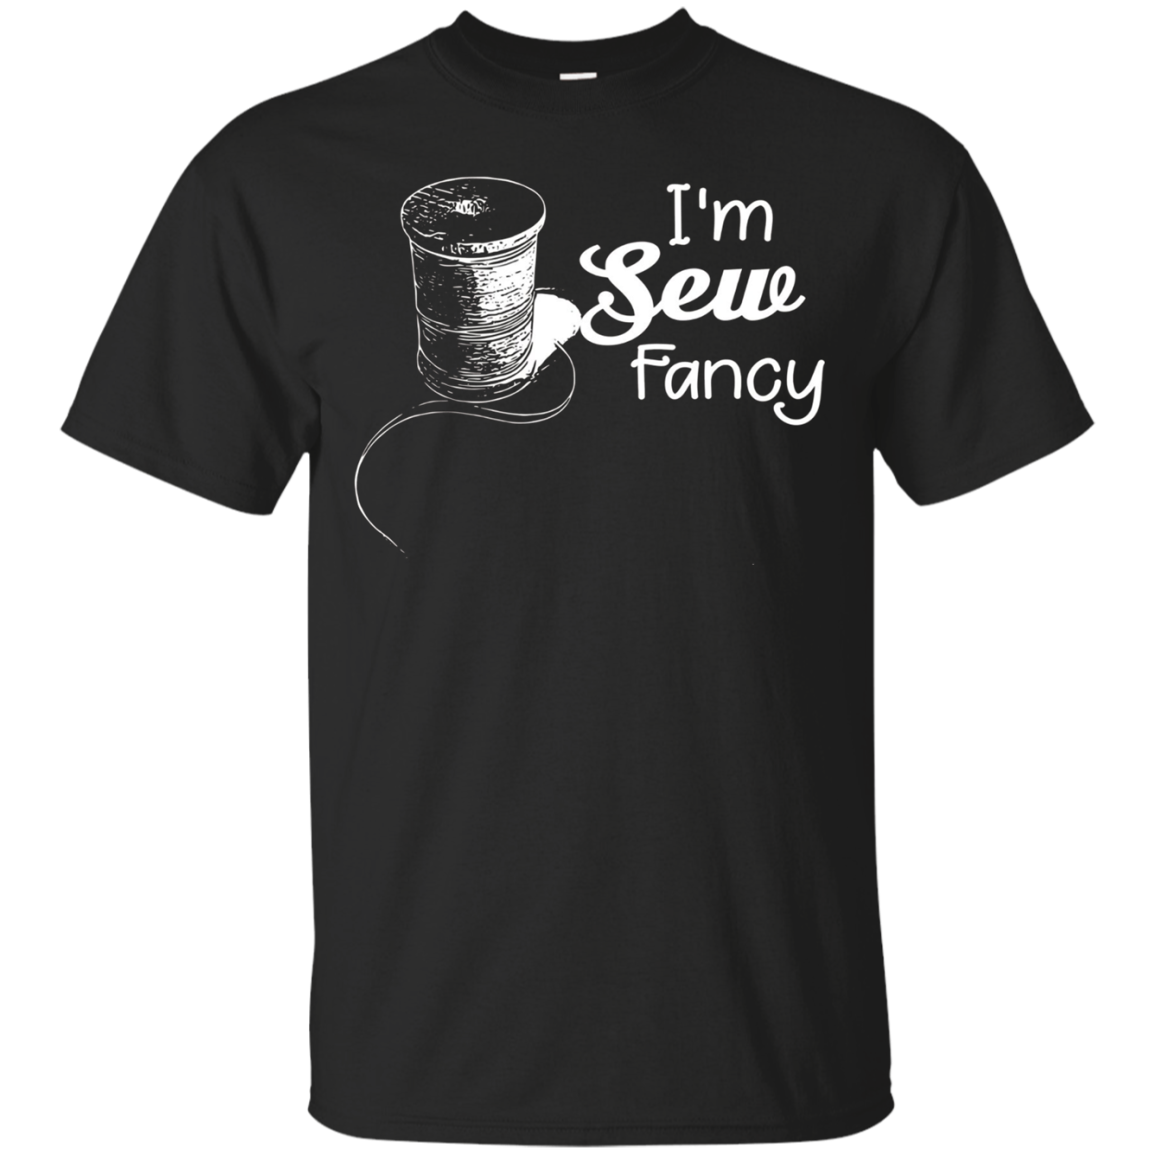 I'm sew fancy Funny Sewing T Shirt Novelty Shirt